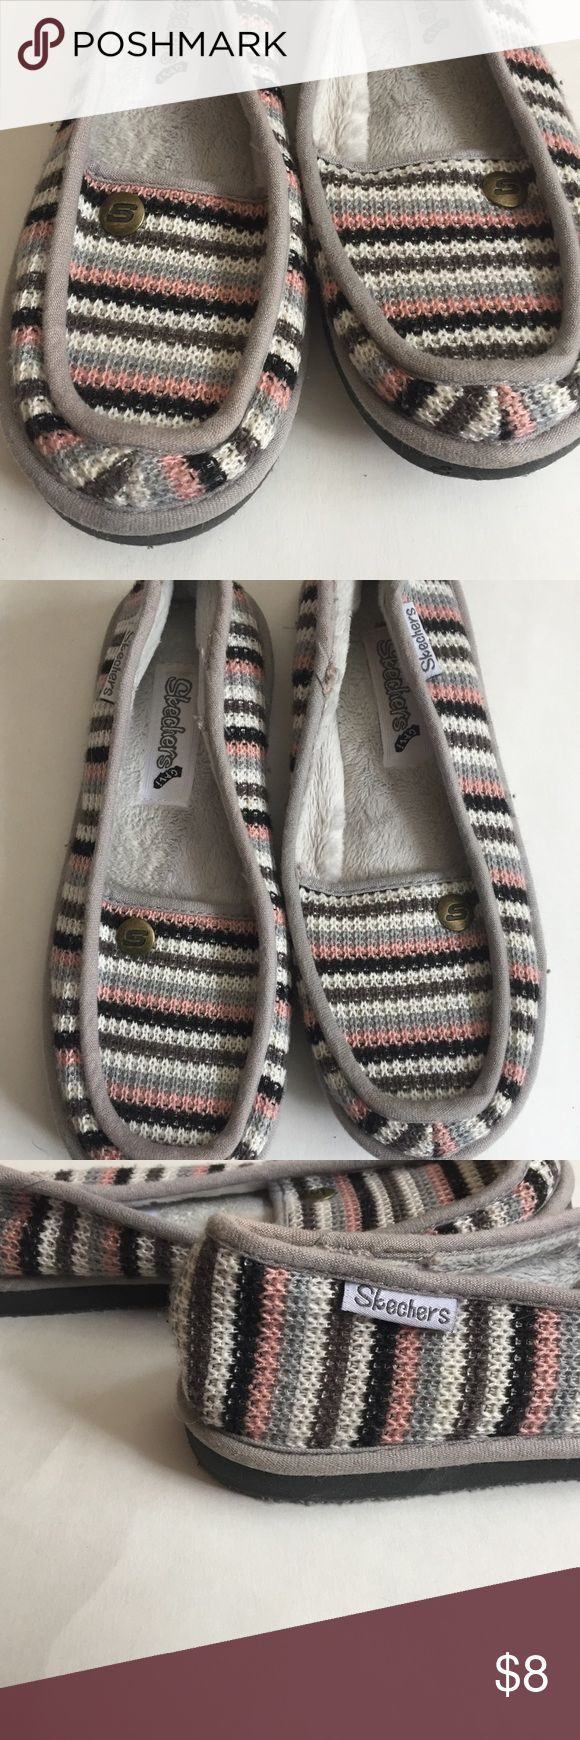 "Sketchers Slippers size 7 Pre-owned but in great condition. Faux fur lining. Knitted exterior. 10"" long Sketchers  Shoes Slippers"